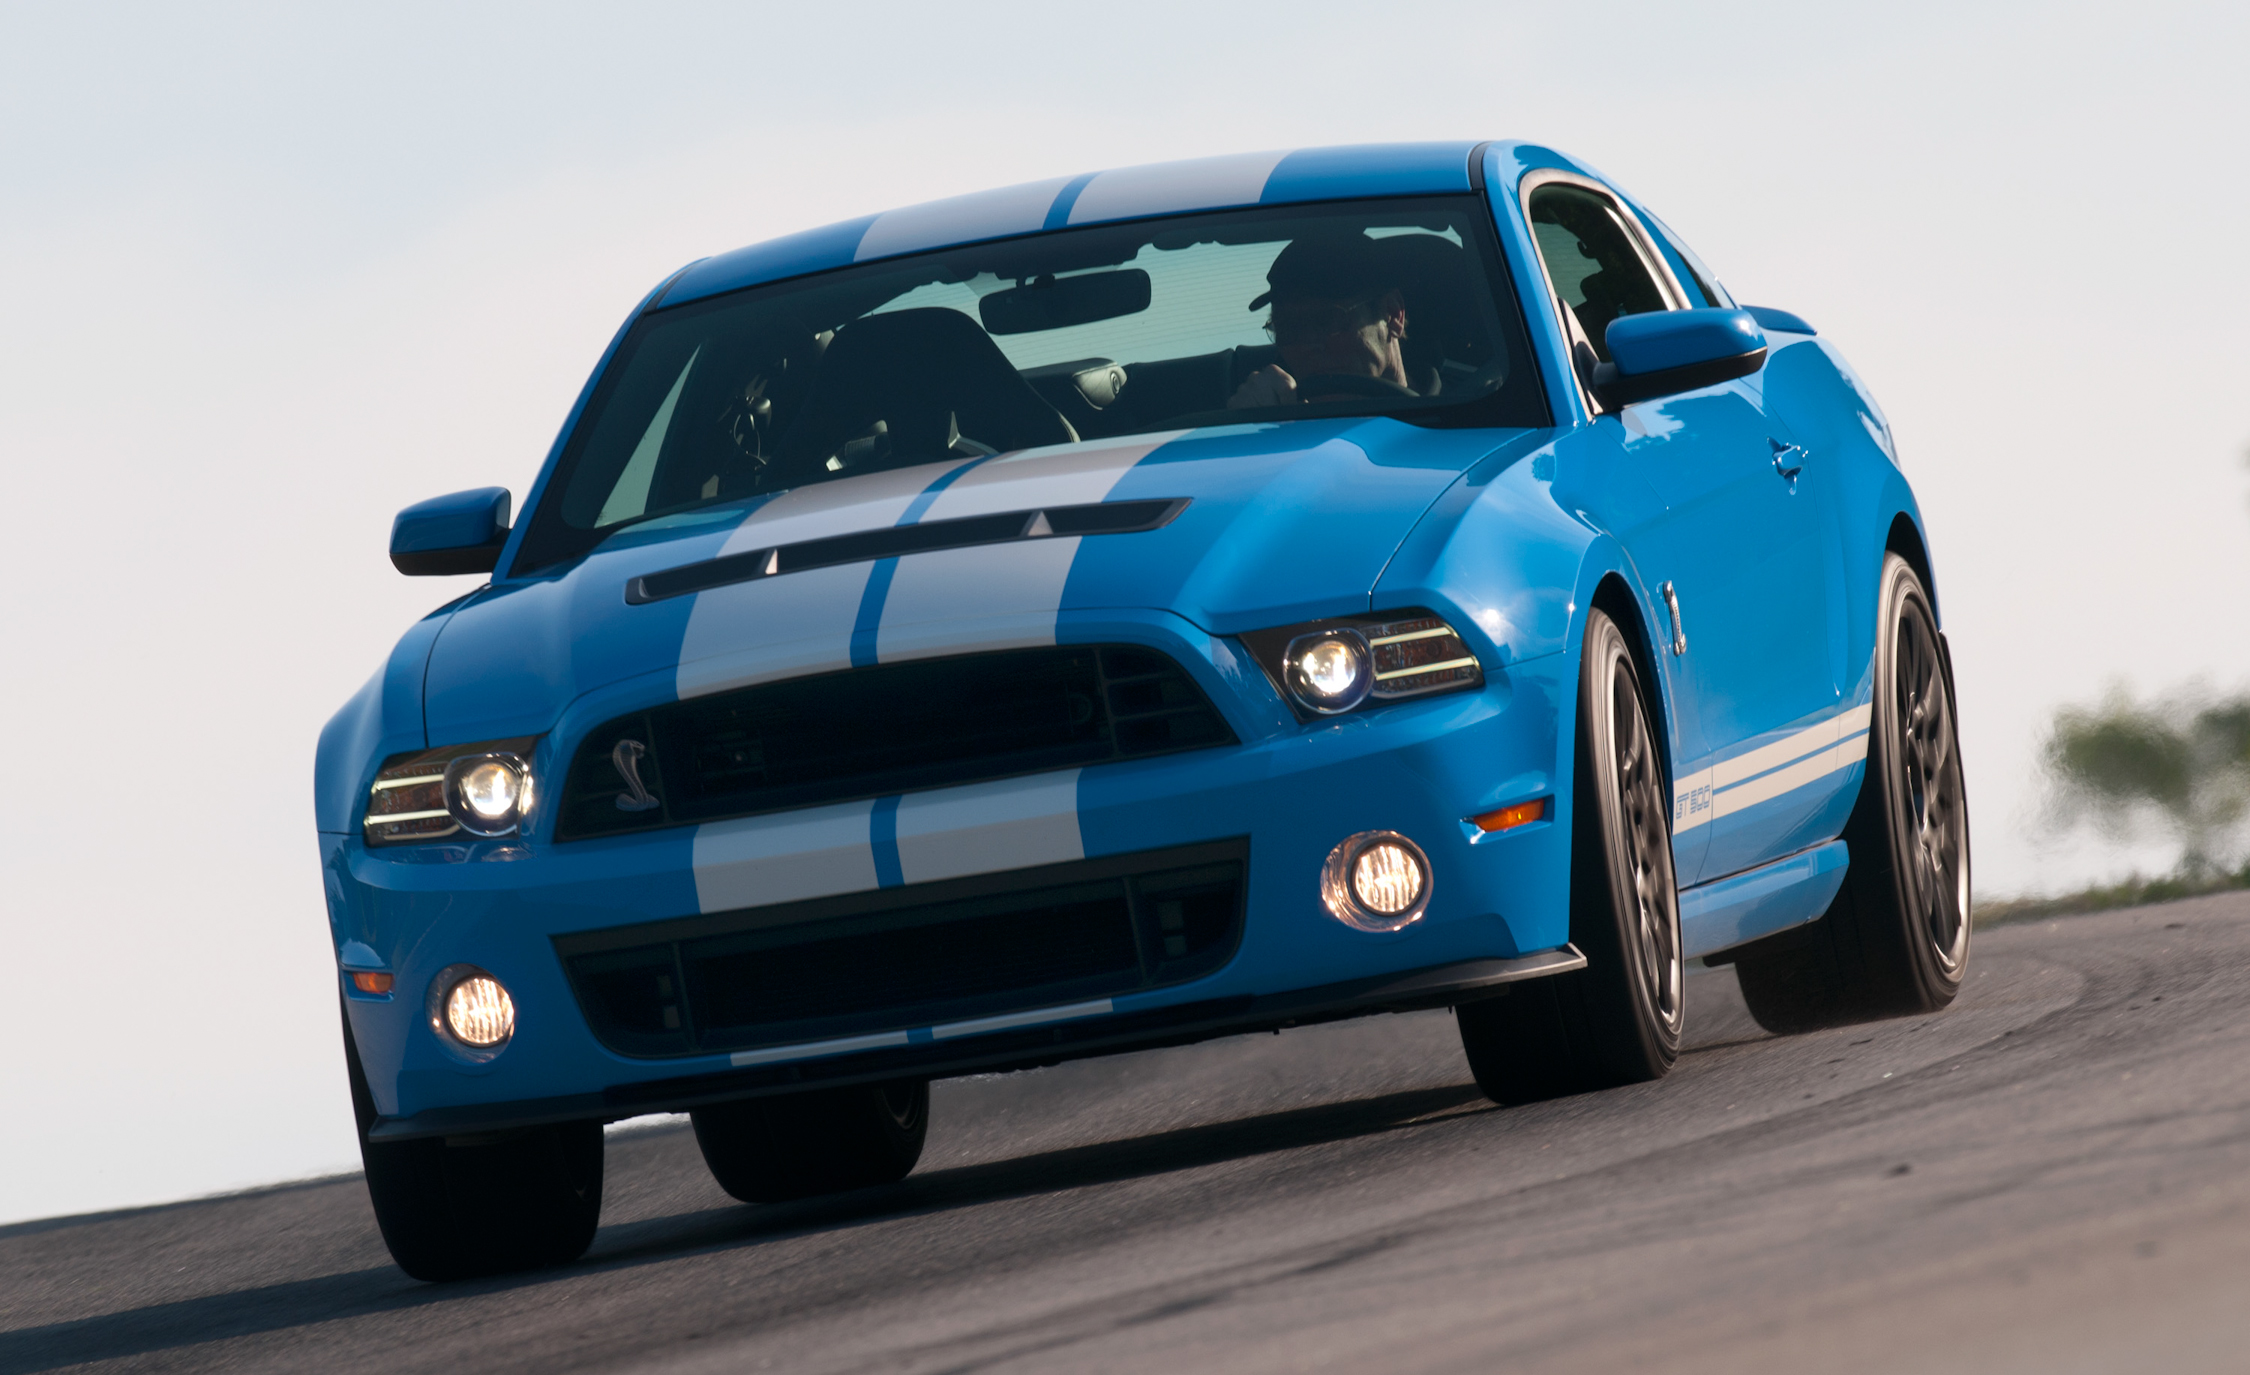 2013 Ford Mustang Shelby GT500 Blue Test Drive Front (Photo 10 of 47)